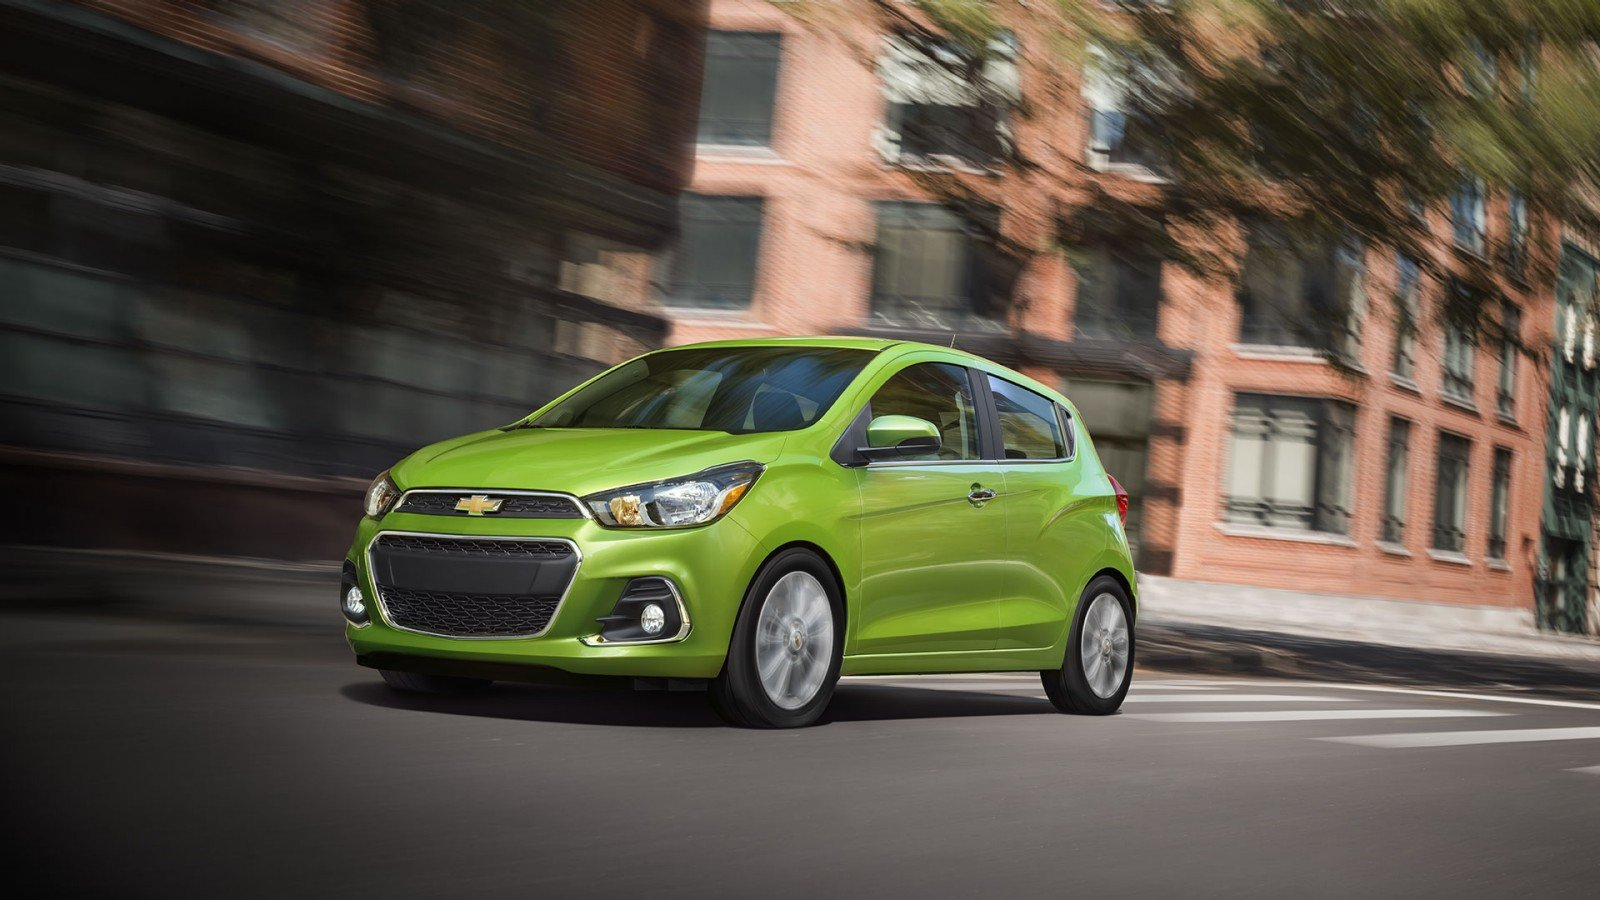 New Chevrolet Spark For Sale Wexford PA